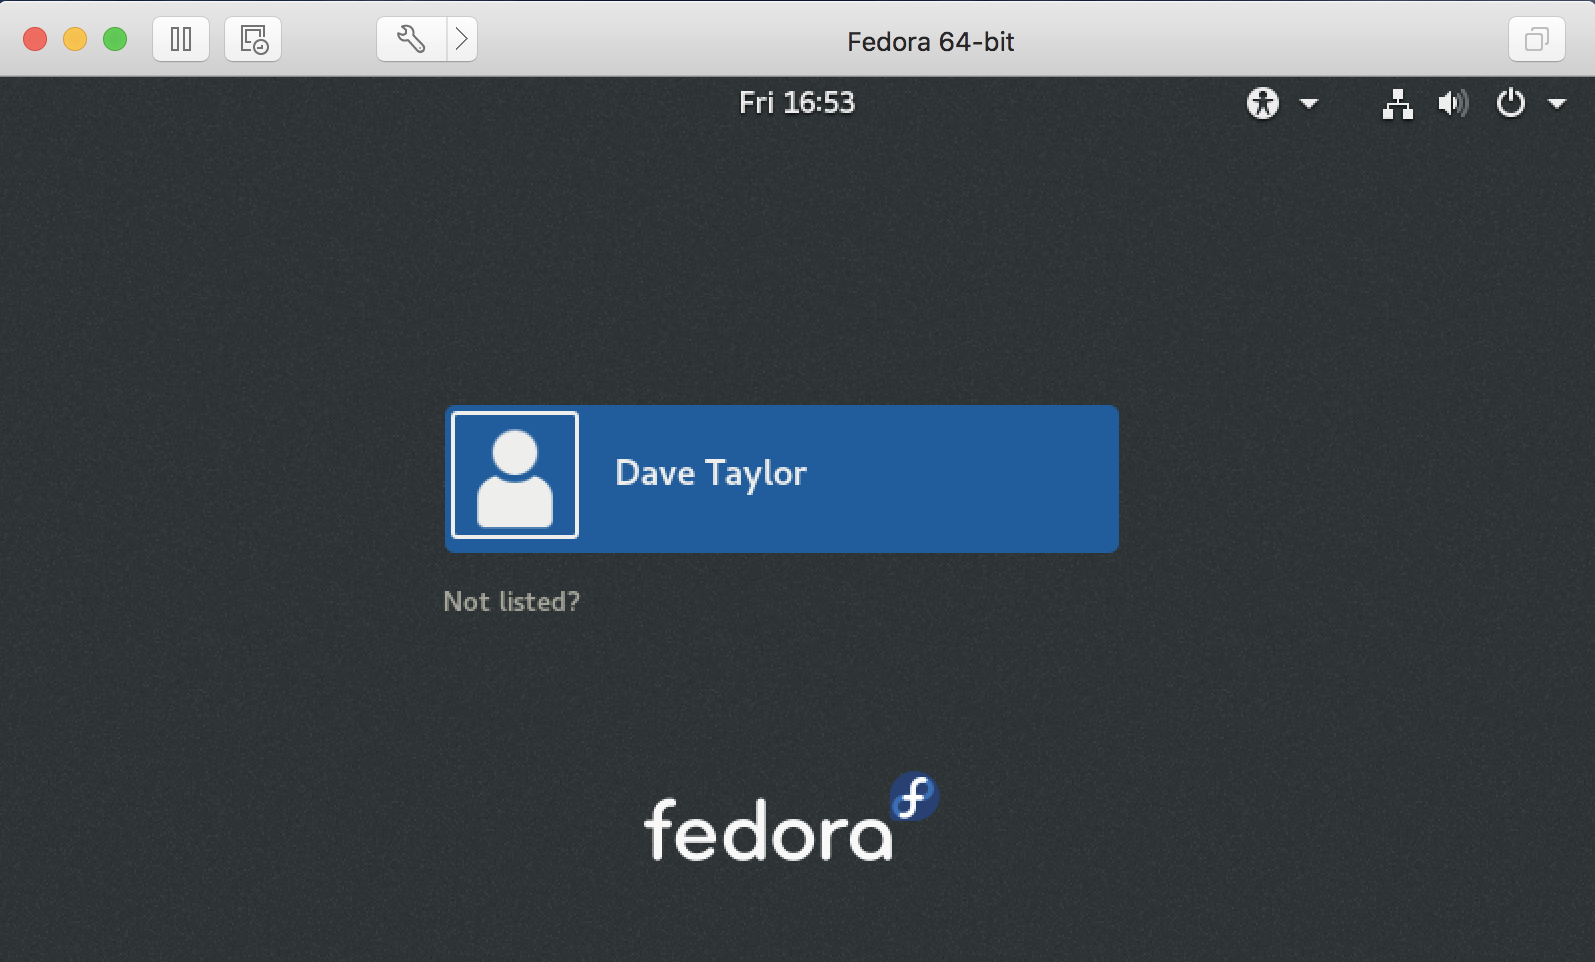 fedora linux - login prompt